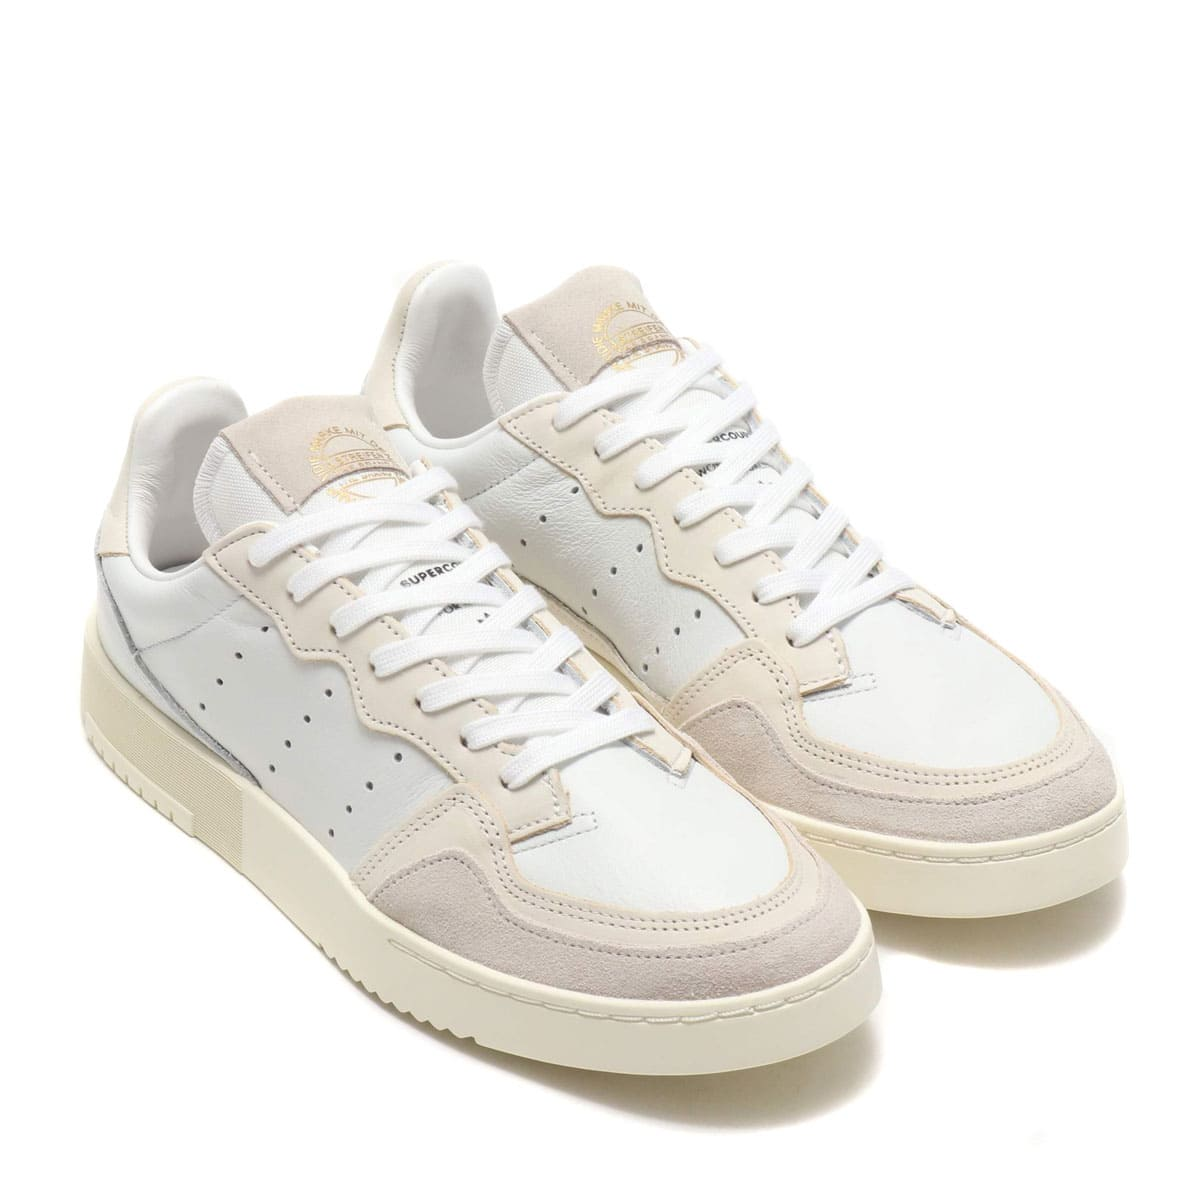 adidas Originals SUPERCOURT CRYSTAL WHITE/CHALK WHITE/OFF WHITE 19FW-I_photo_large